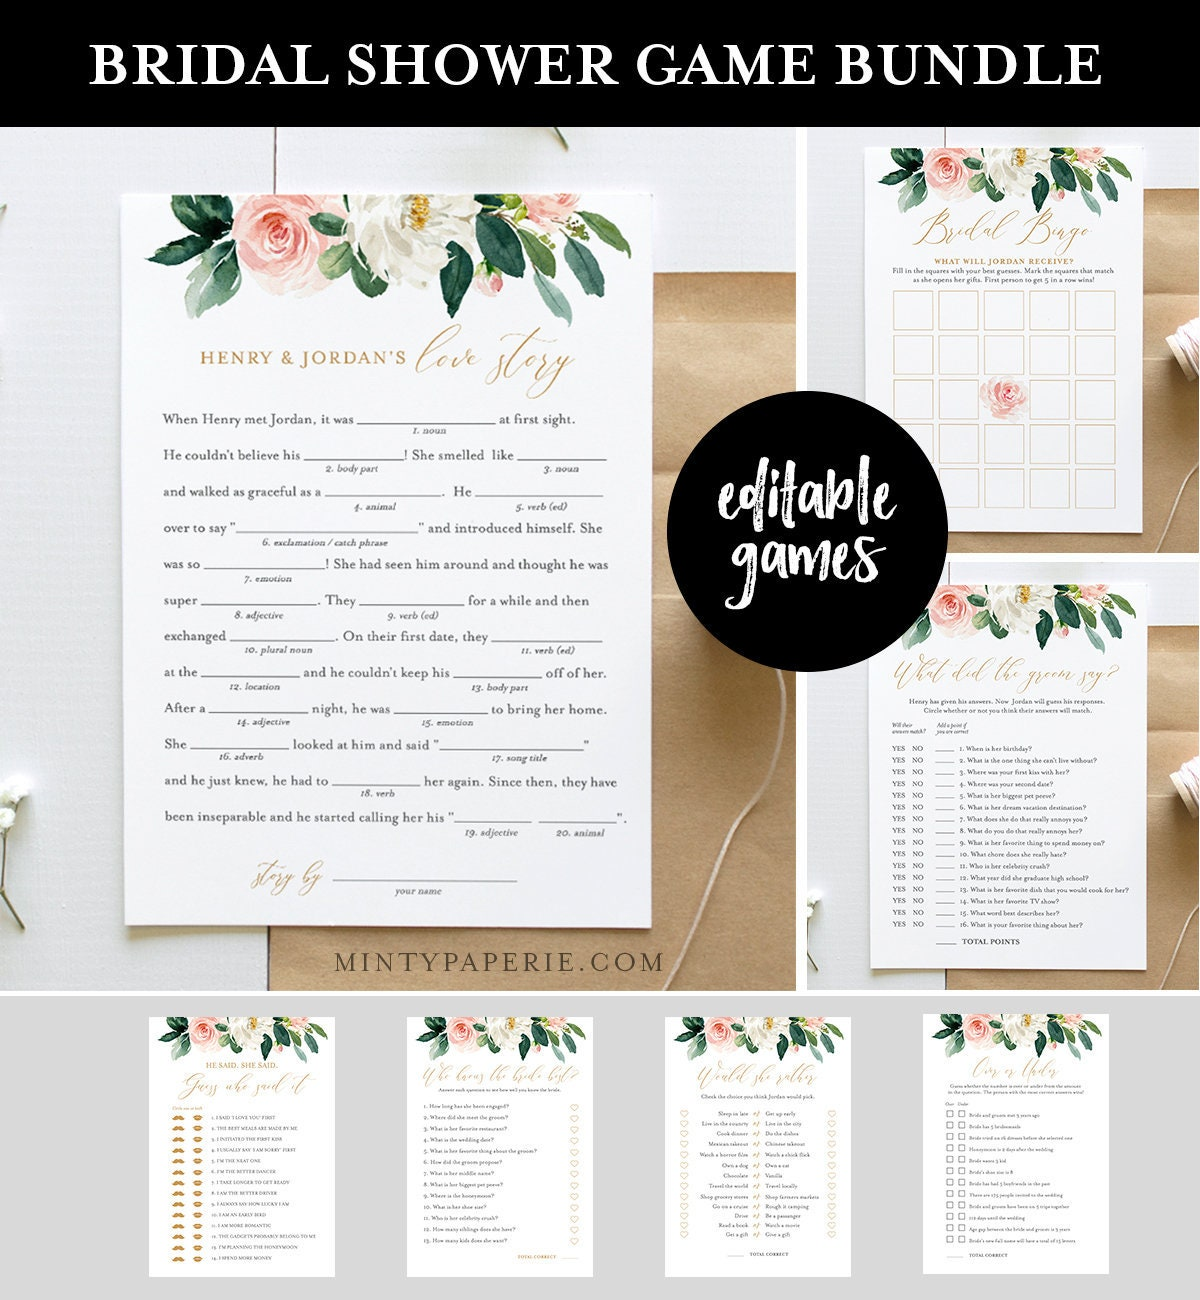 bridal shower game bundle editable games instant download customize name questions printable wedding shower game template diy 043bgb